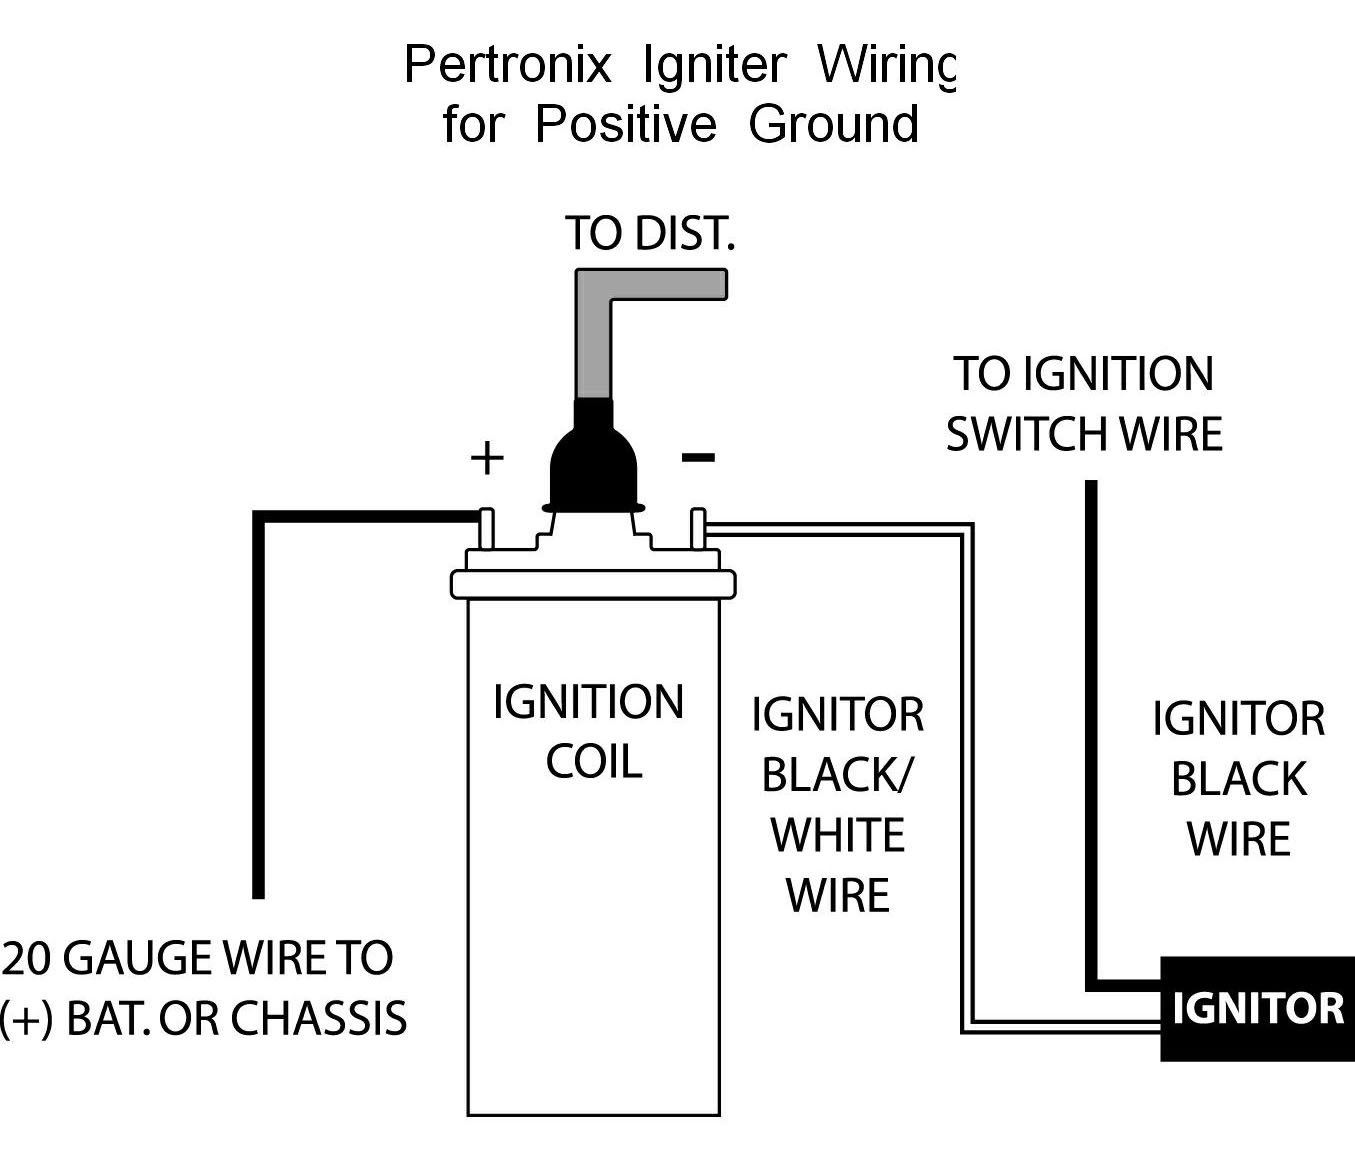 PerPosGndWiring pertronix positive ground wiring ford ignition module wiring diagram at panicattacktreatment.co